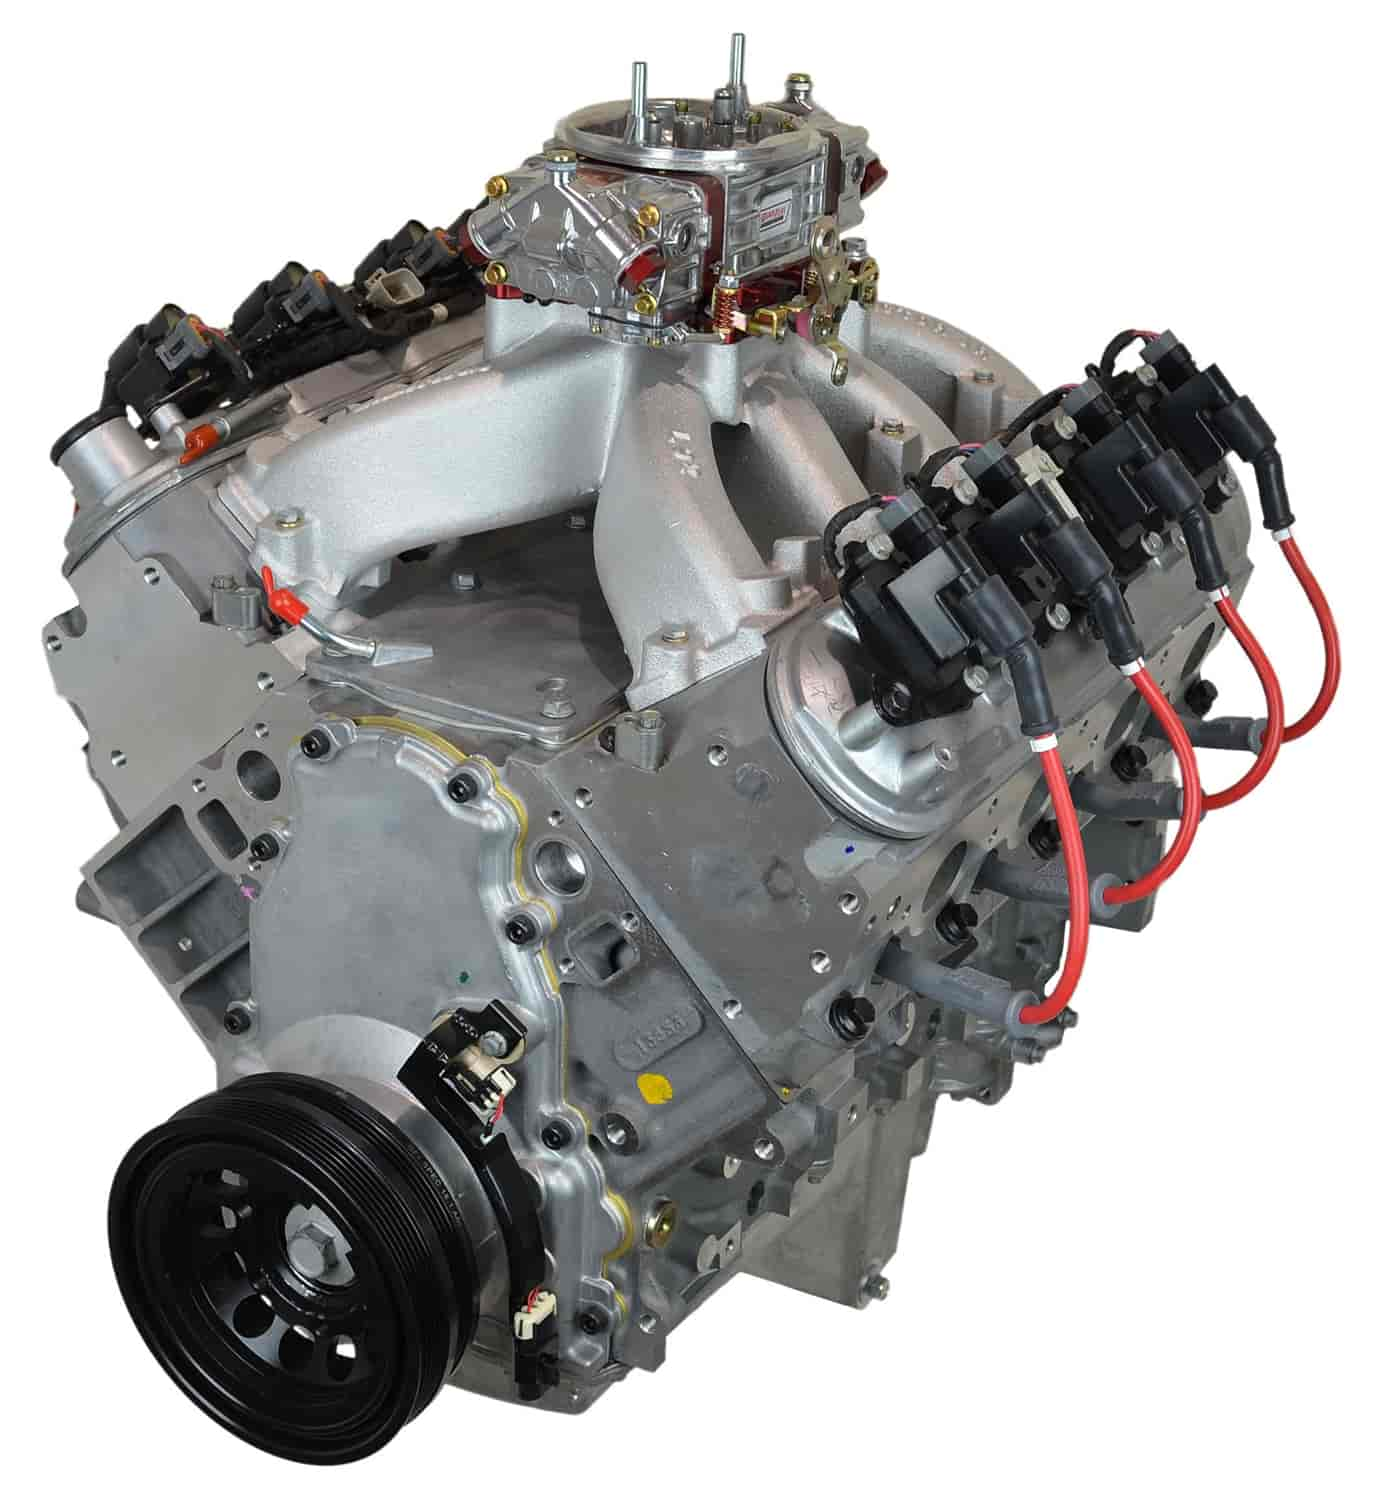 Gm Ls Engines >> ATK Engines LS02C: High Performance Crate Engine GM LS3 415ci 620HP / 550TQ | JEGS